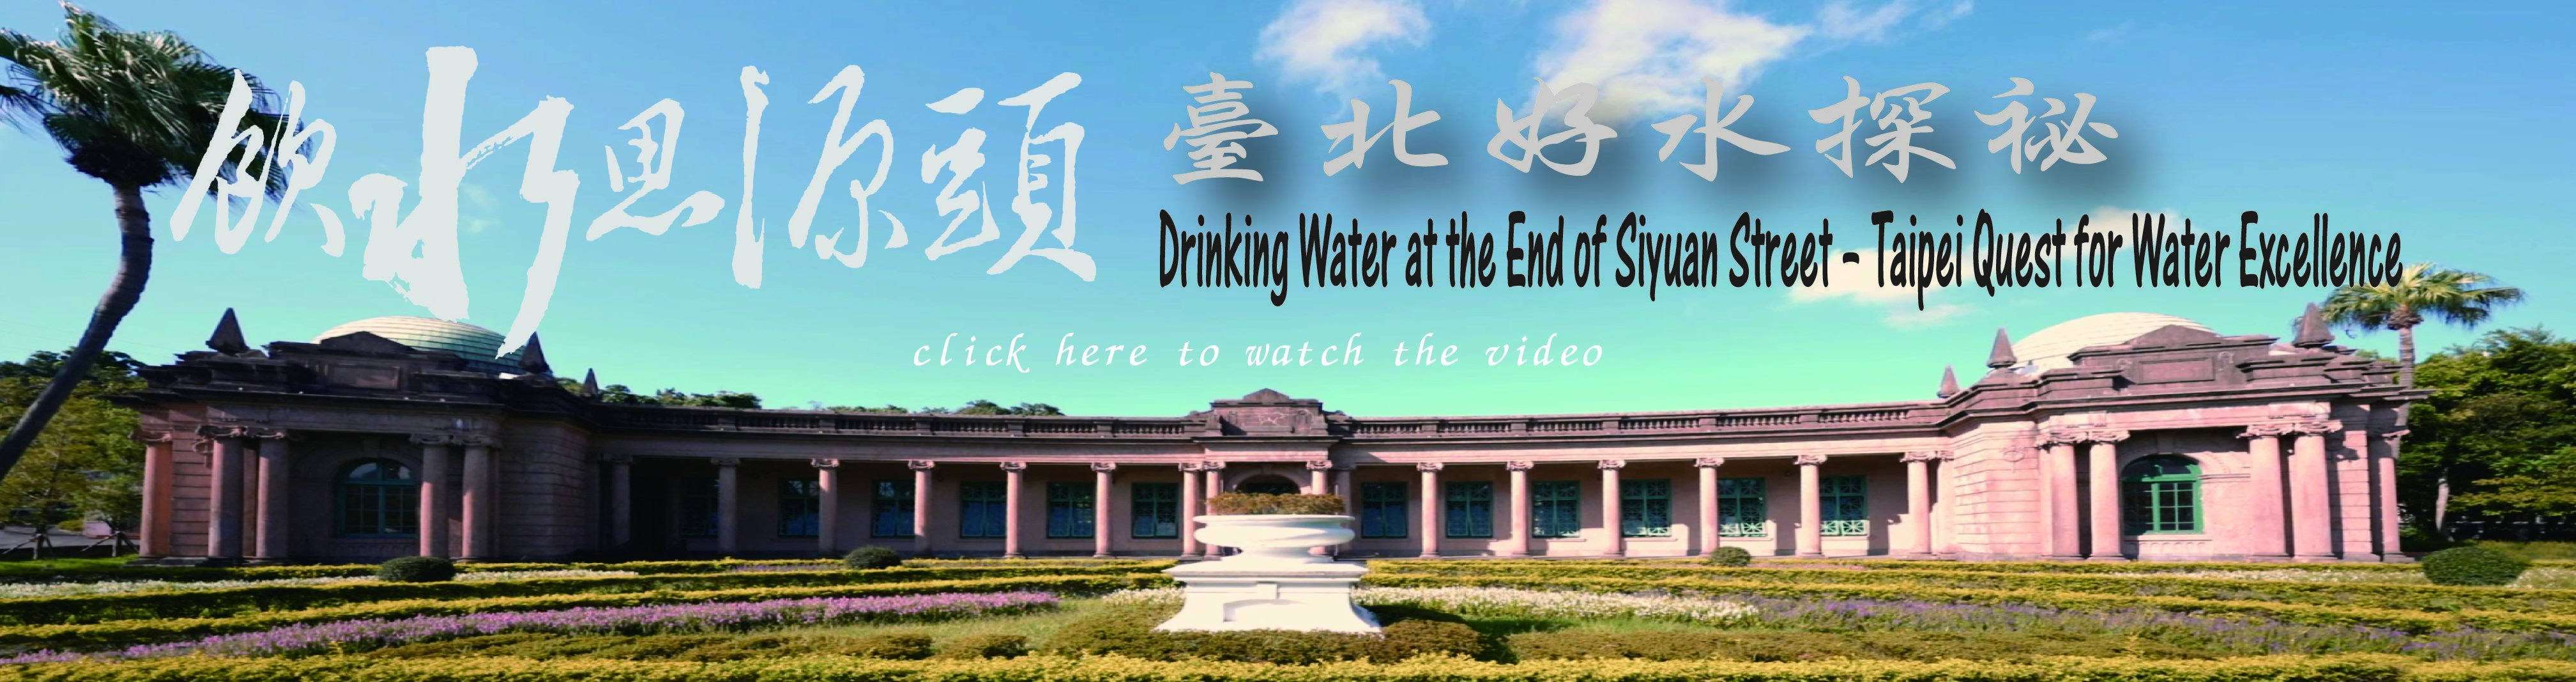 Drinking Water at the End of Siyuan Street - Taipei's Quest for Water Excellence